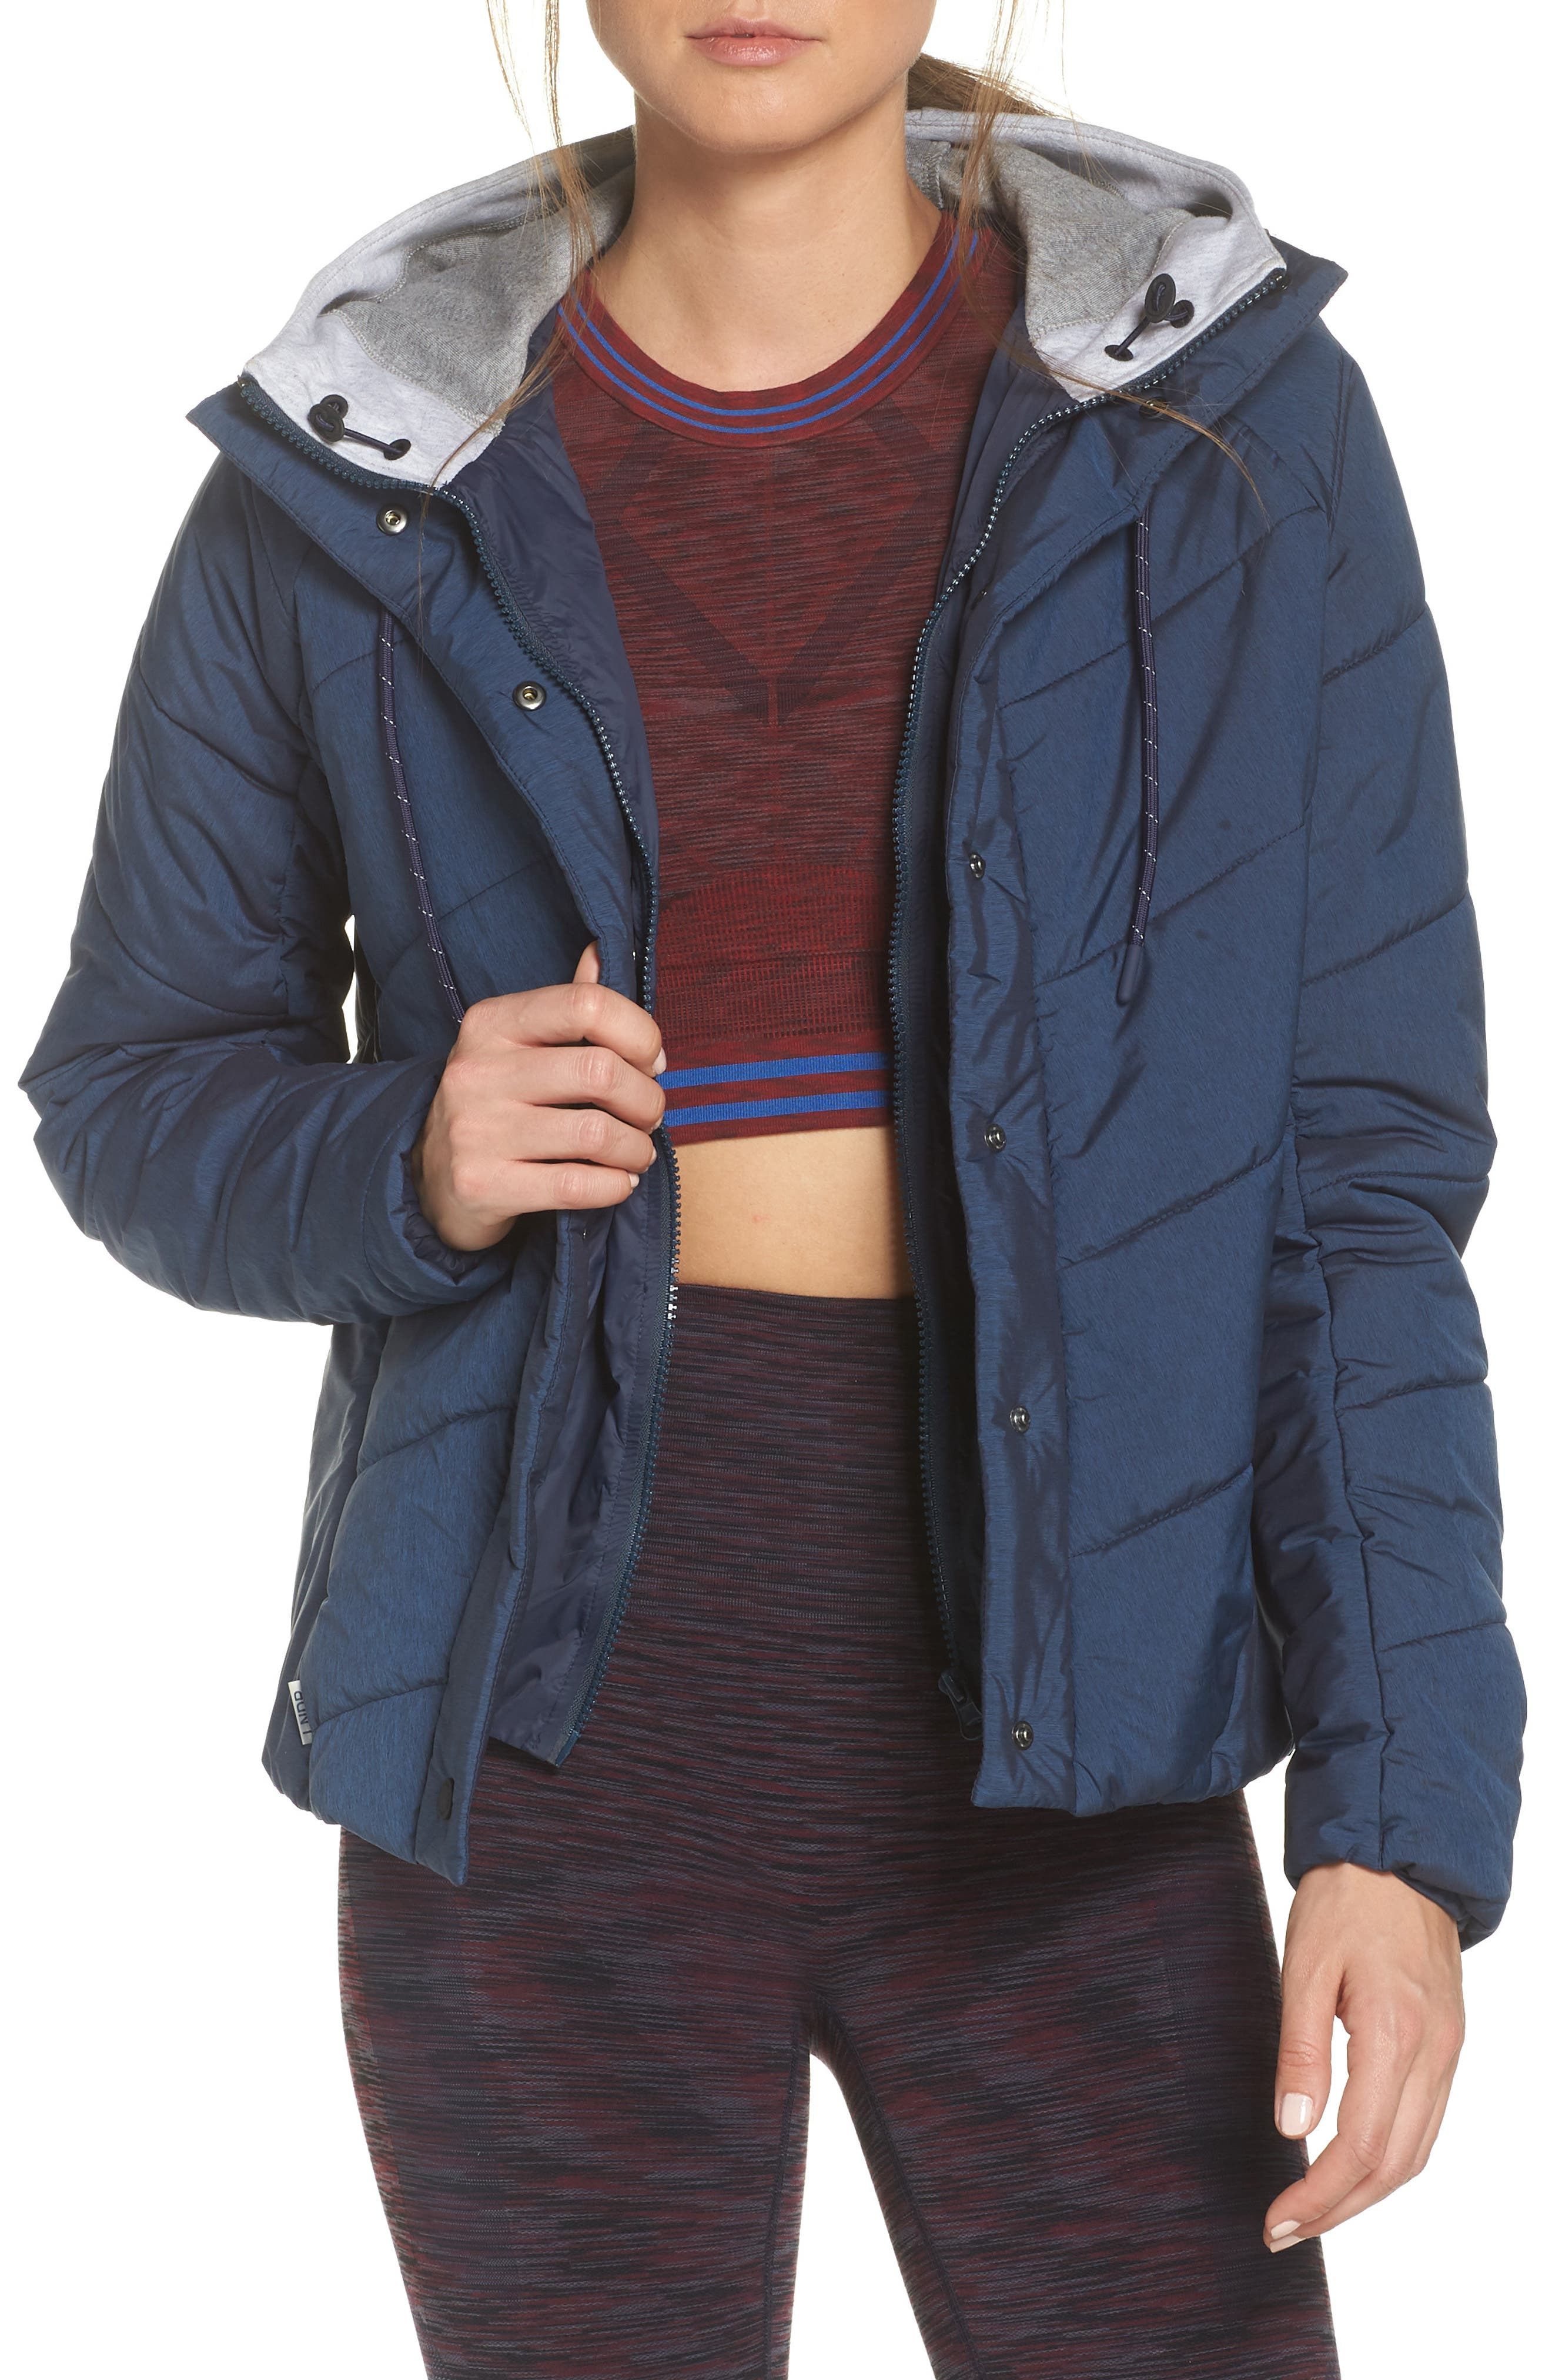 Toast Water Repellent Hooded Jacket,                             Main thumbnail 1, color,                             NAVY MARL